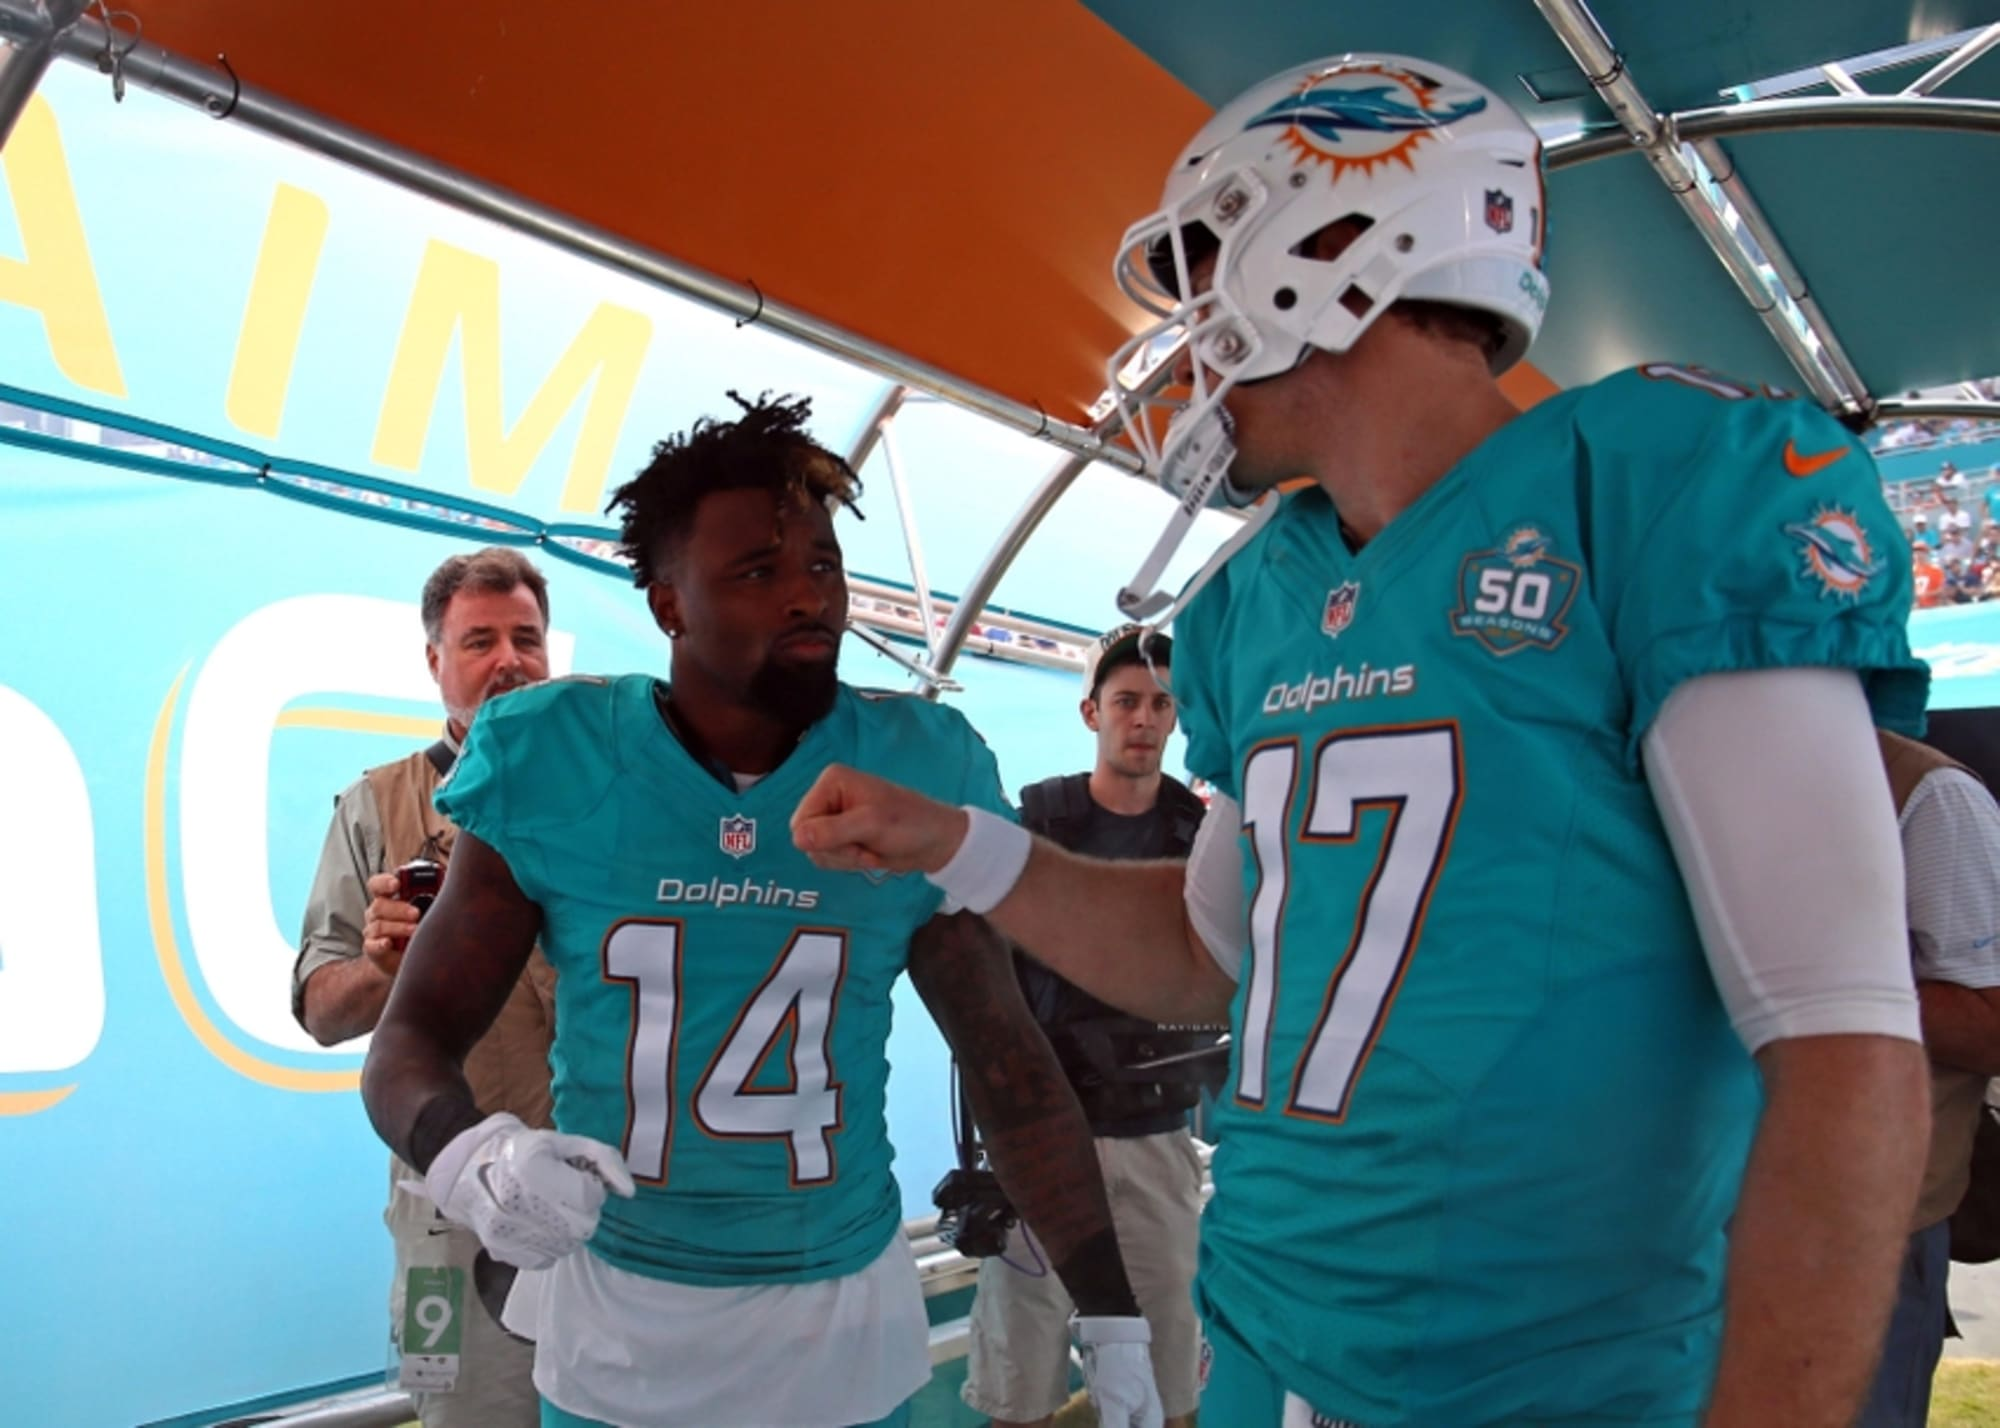 miami dolphins jarvis landry jersey